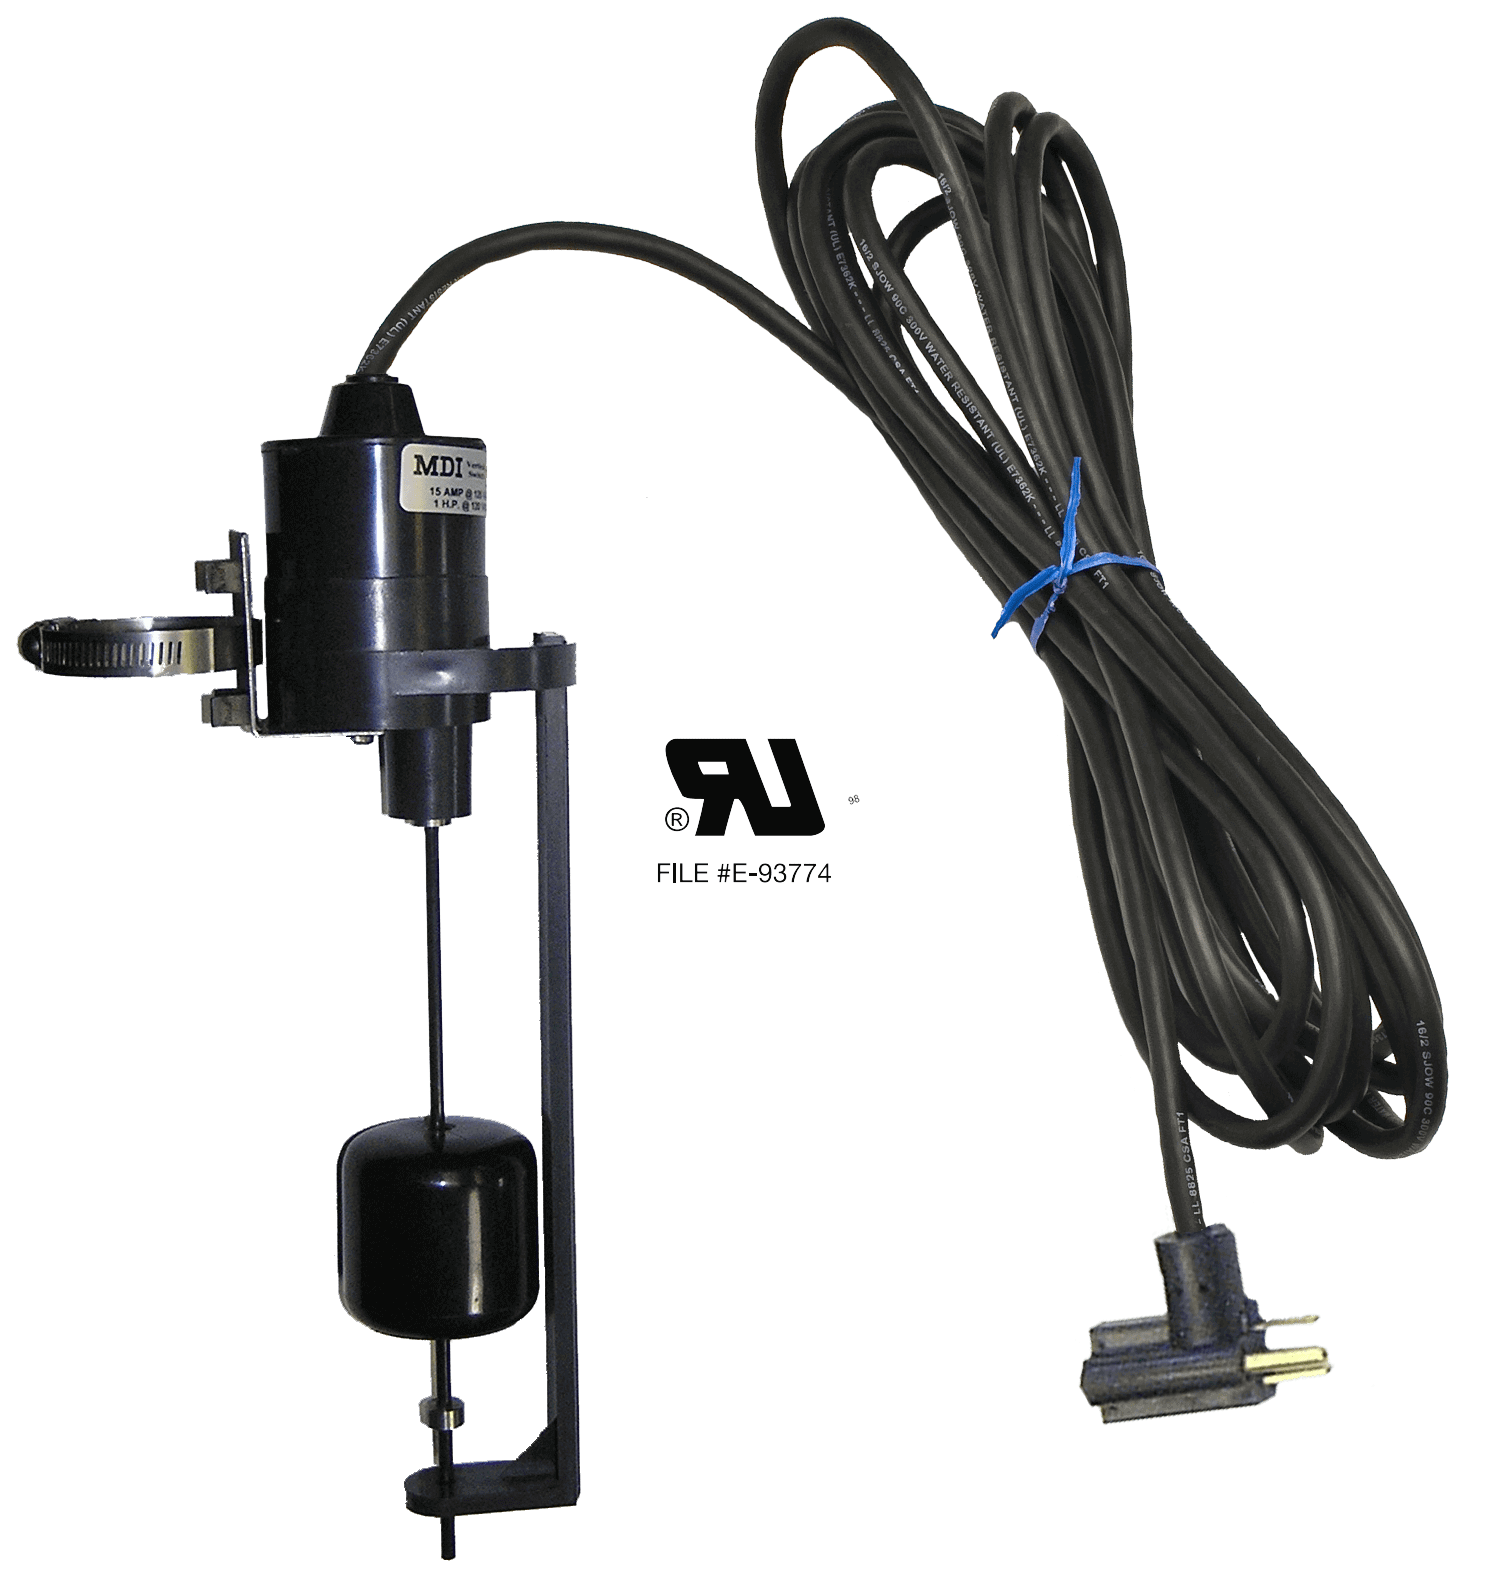 Vertical Float Switch - 20 Foot - 1 HP @ 120 VAC - 1 to 6 Inch Pumping  Range - Normally Open - 120 VAC Piggyback Plug